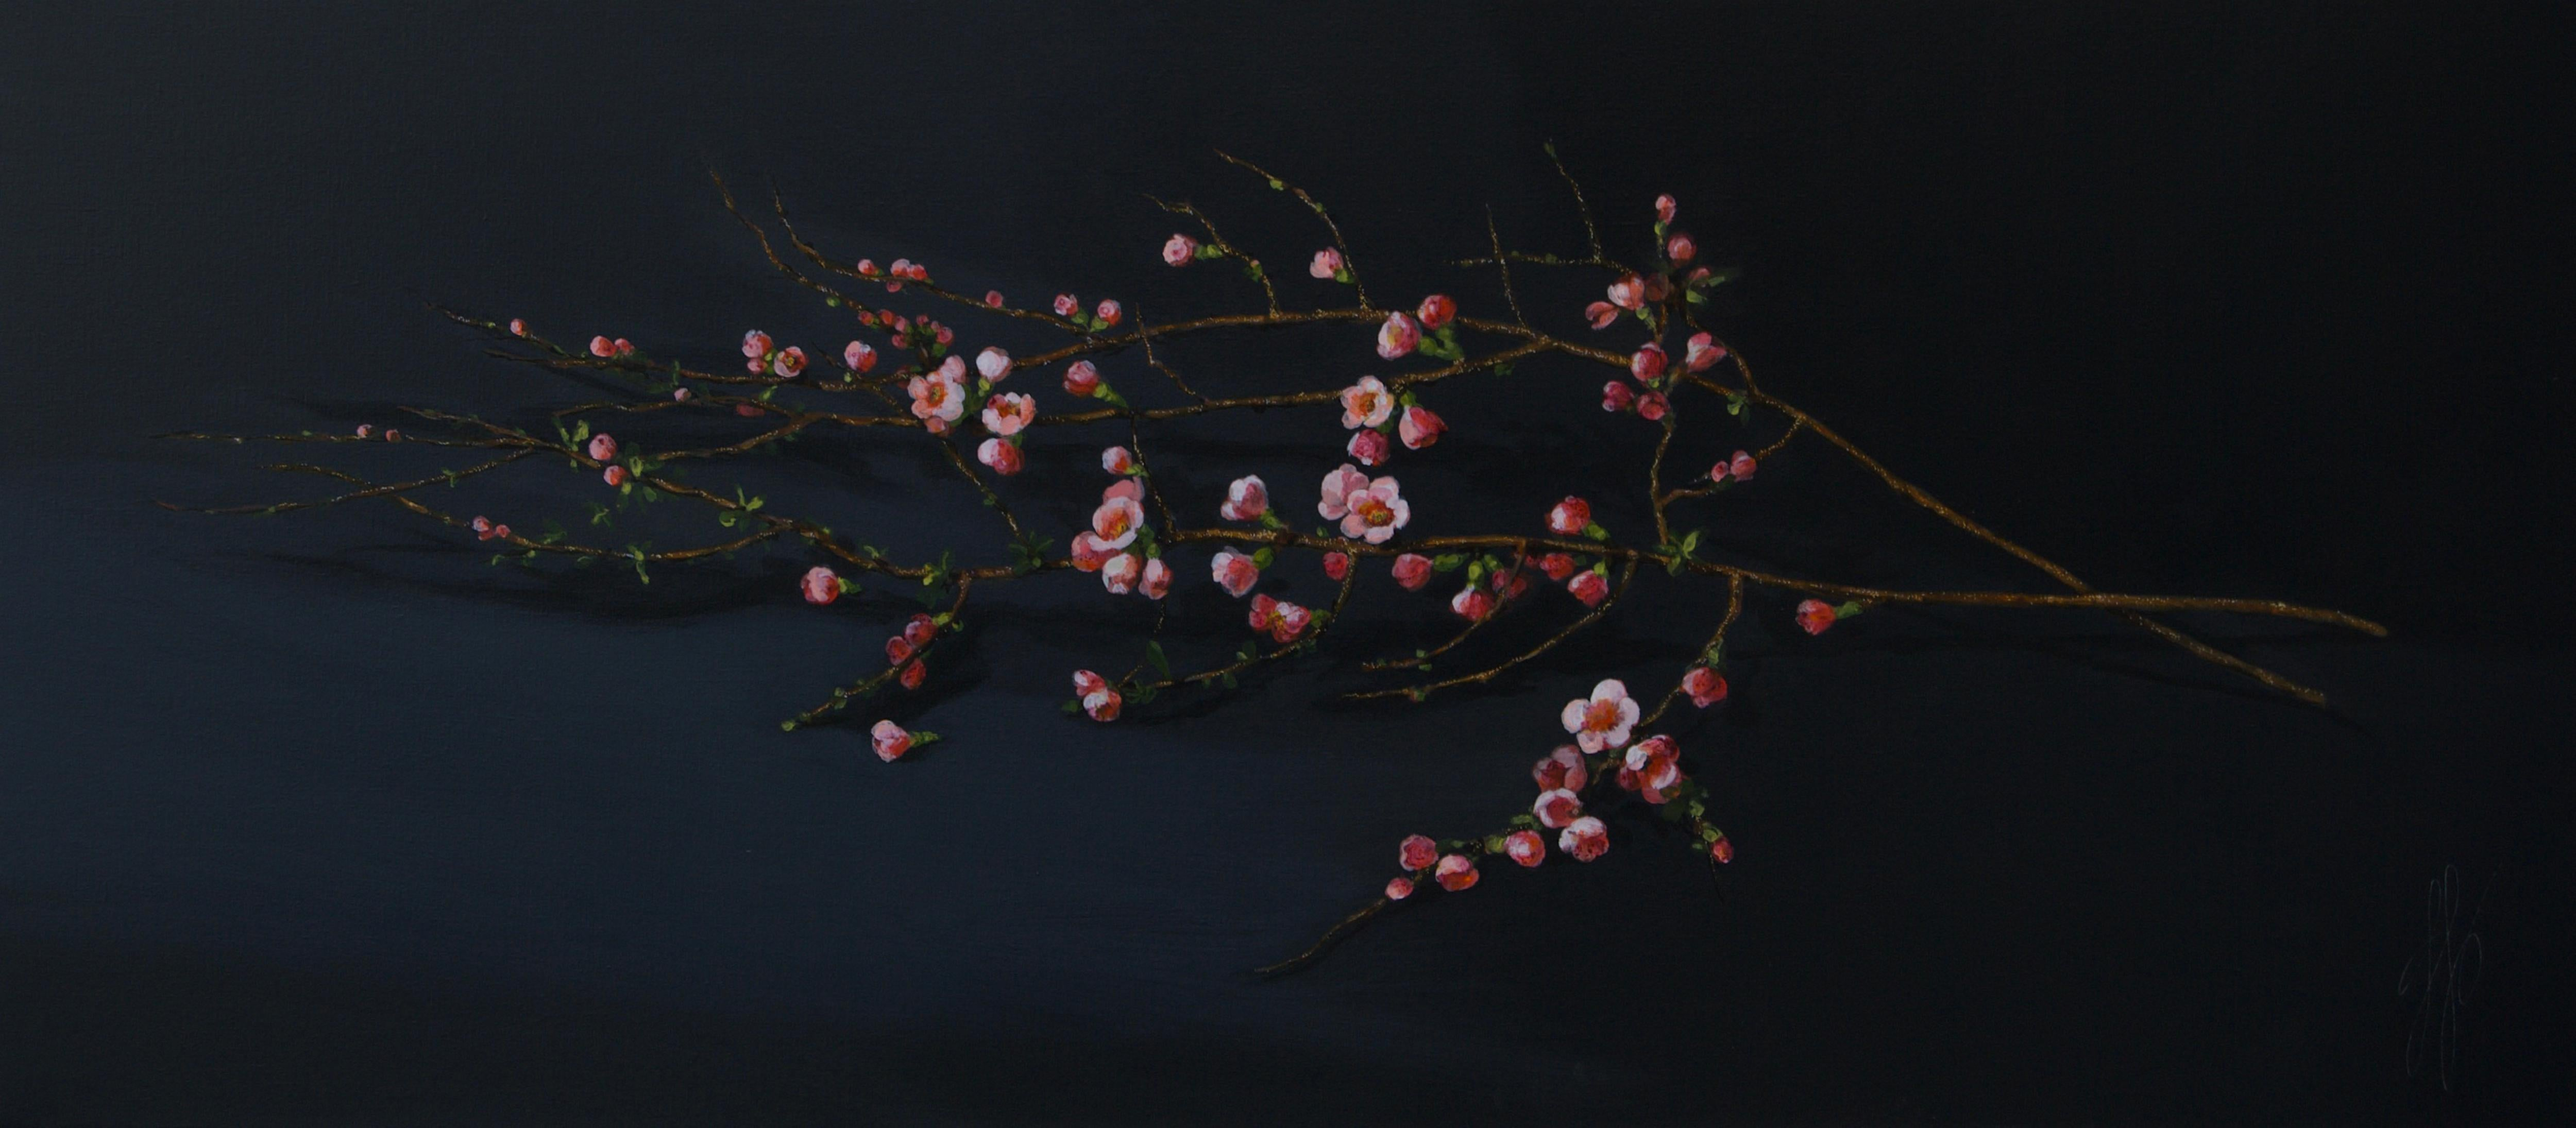 ''Blossom Branch'', Contemporary Still Life with Pink and Orange Blossom Branch